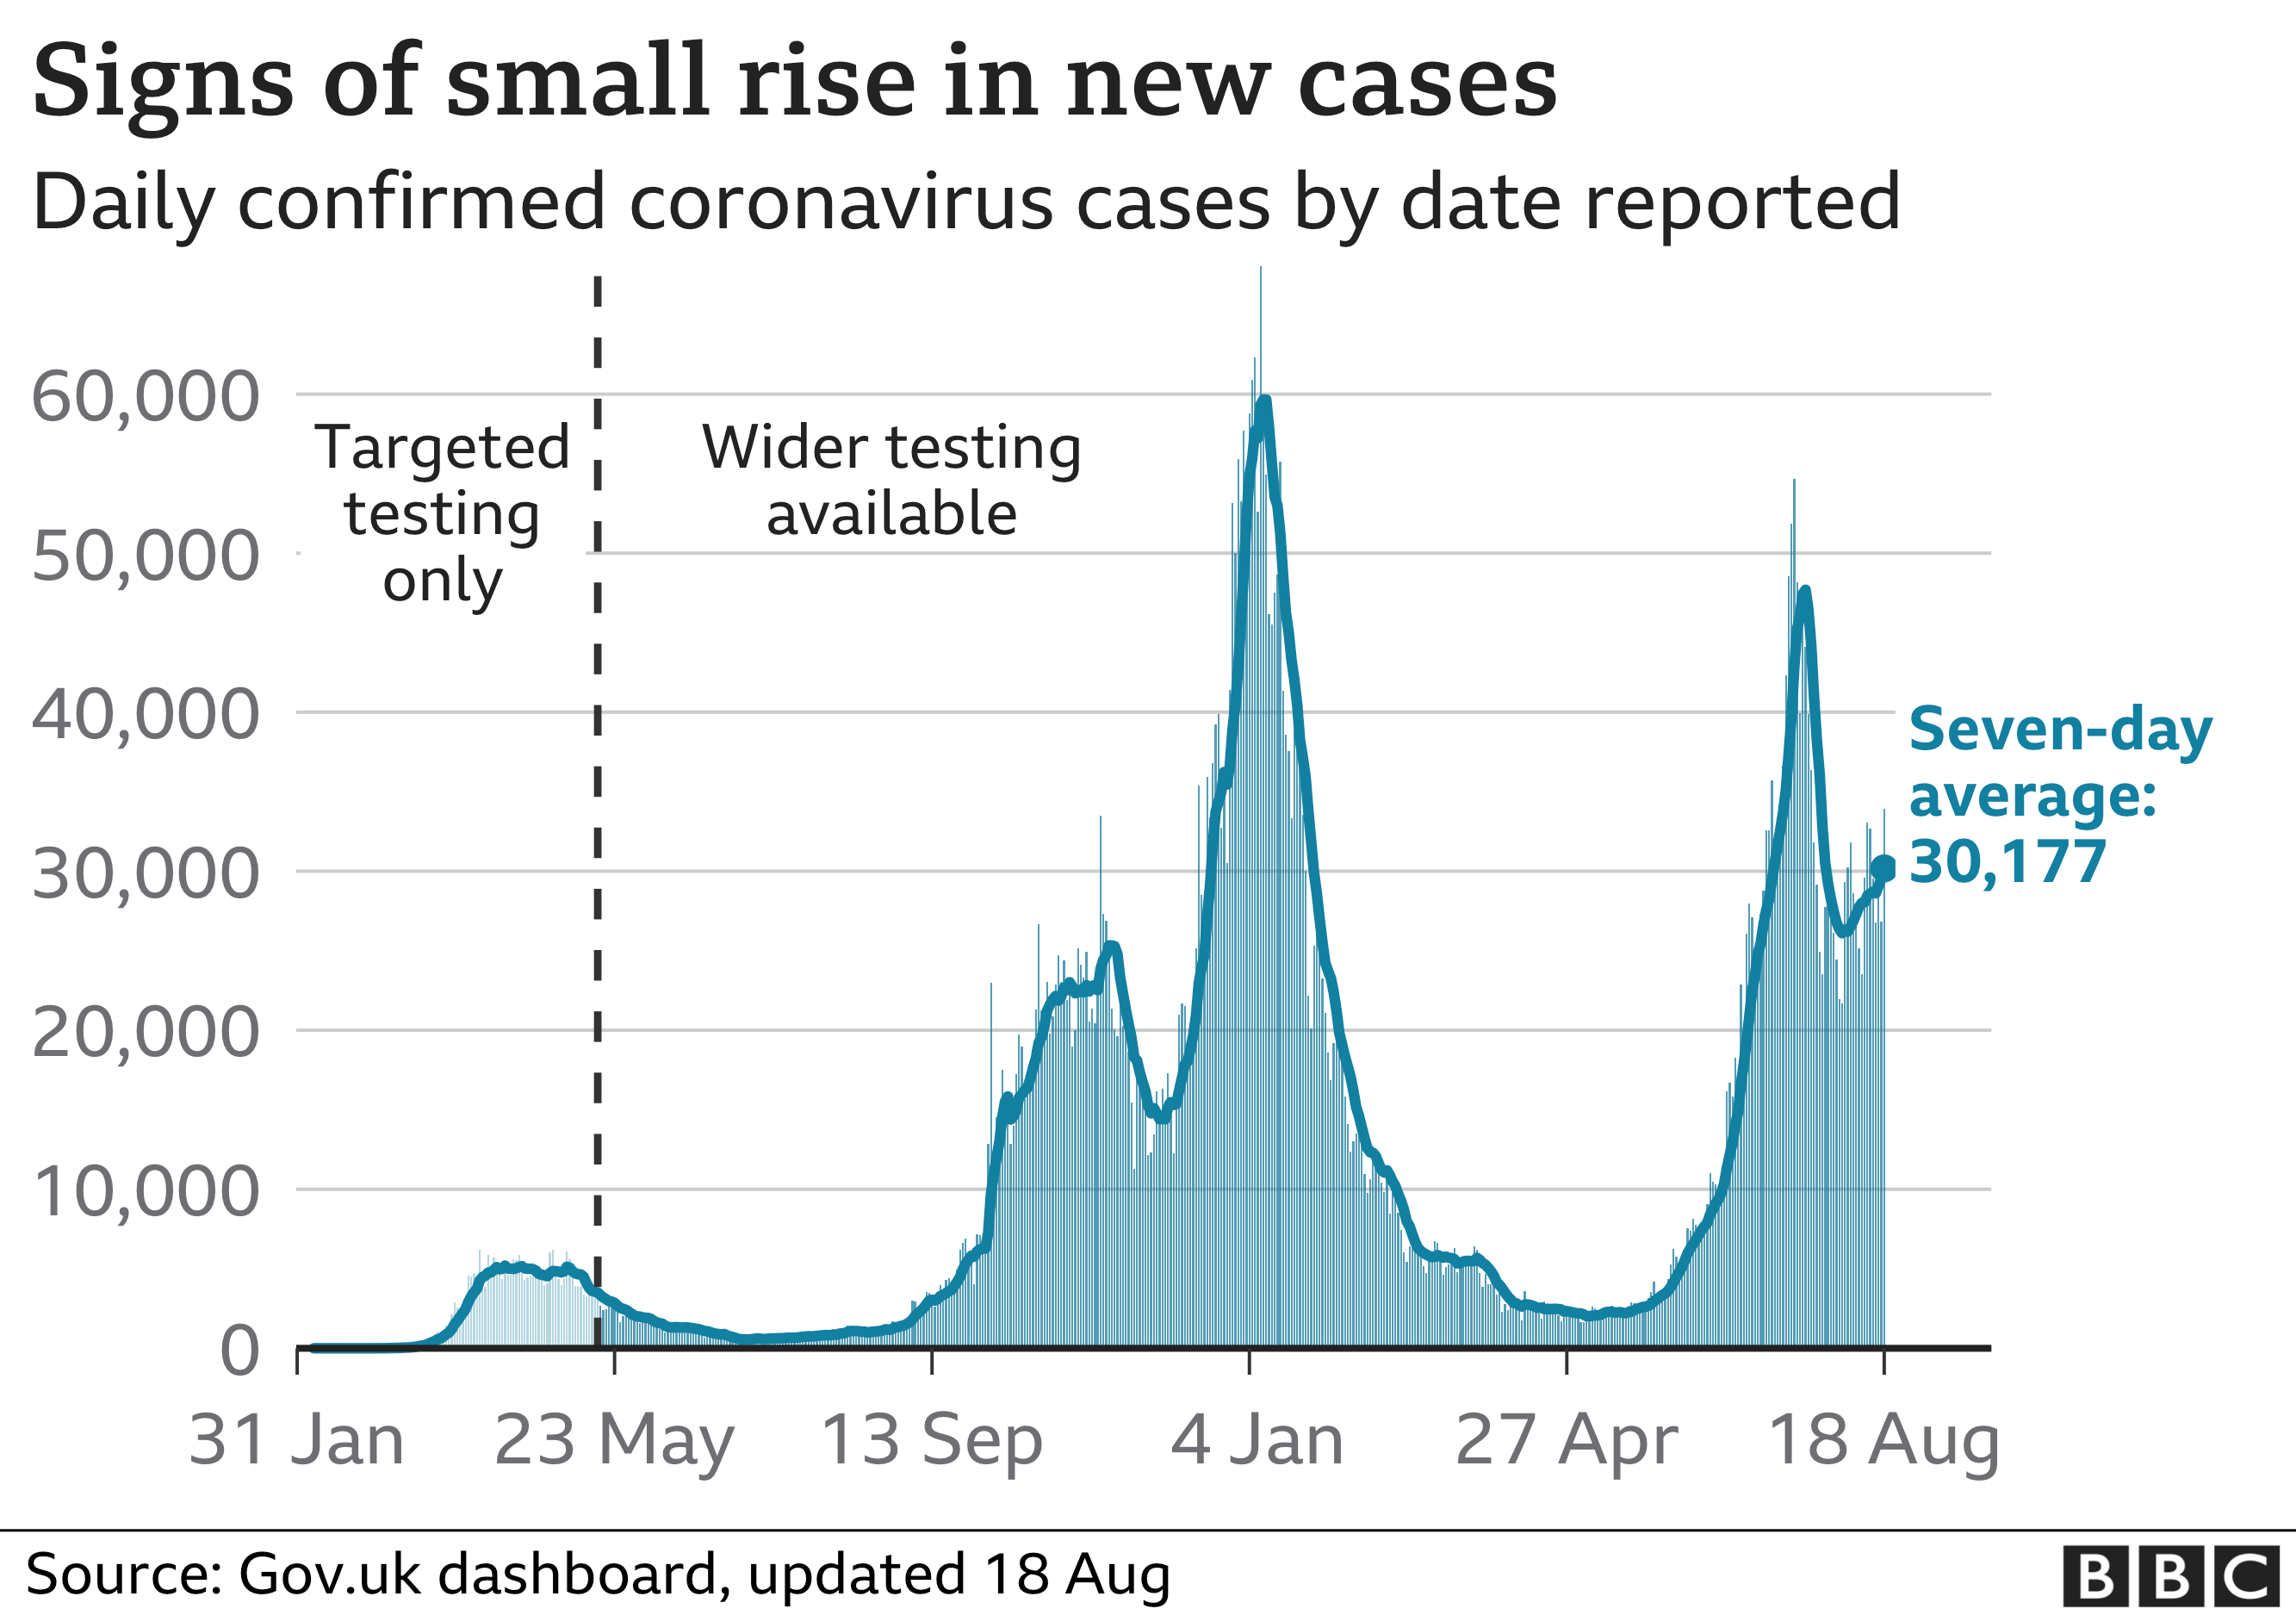 Chart shows small rise in new cases